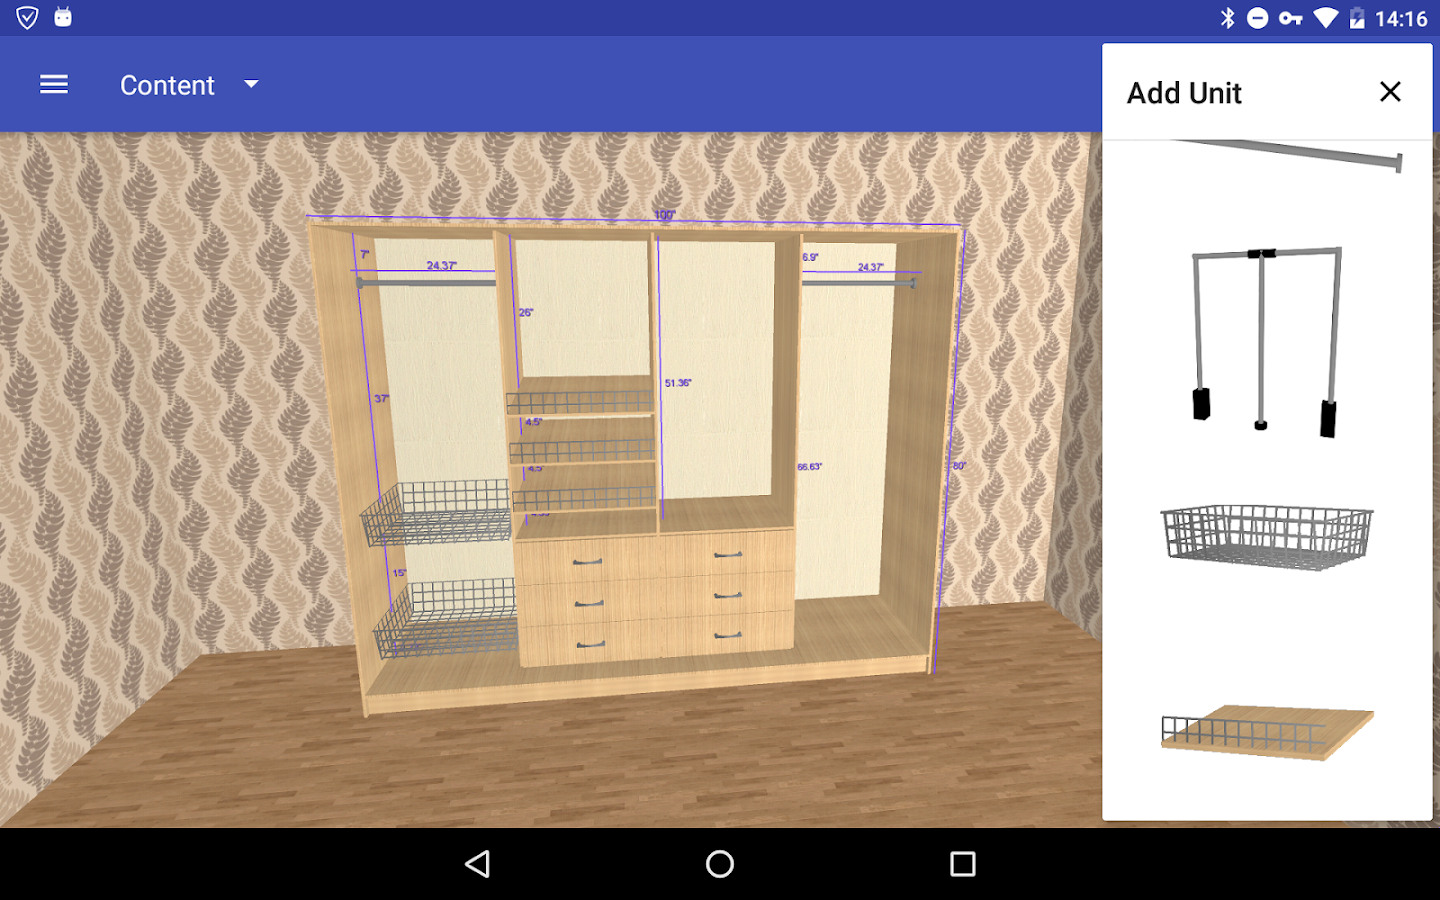 Closet planner 3d android apps on google play for 3d wardrobe planner